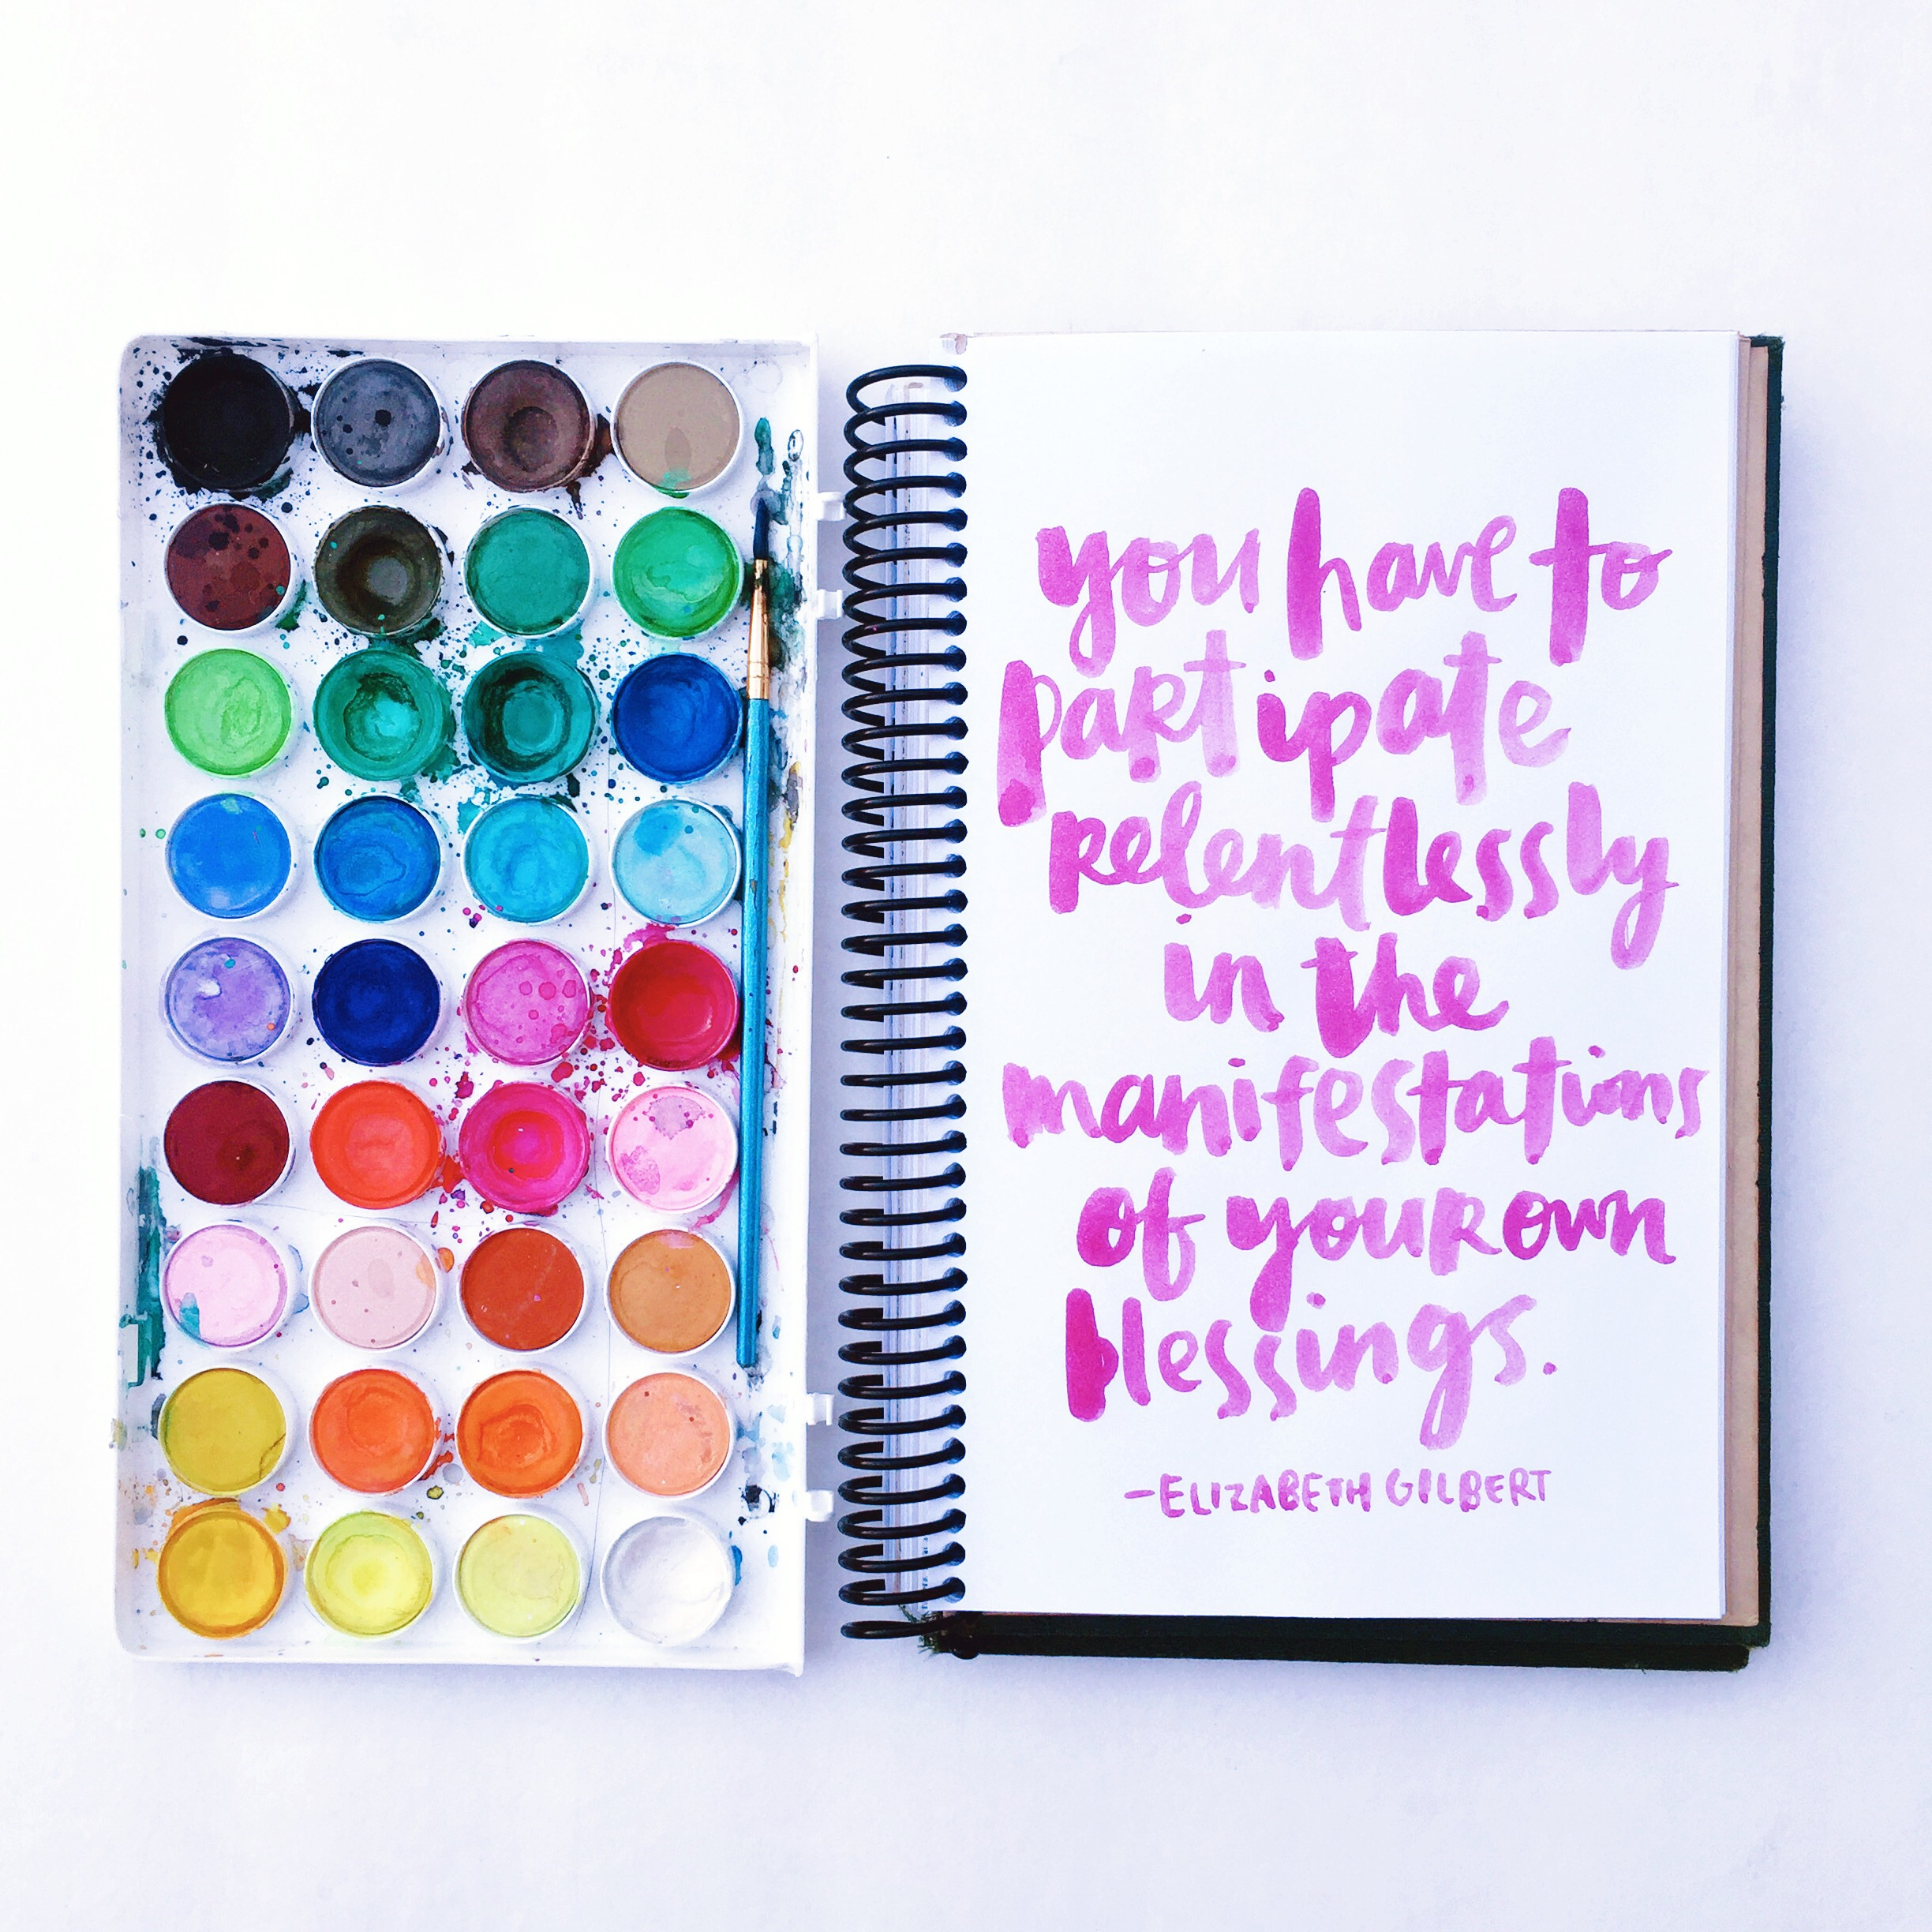 Elizabeth Gilbert quote by Amy Tangerine